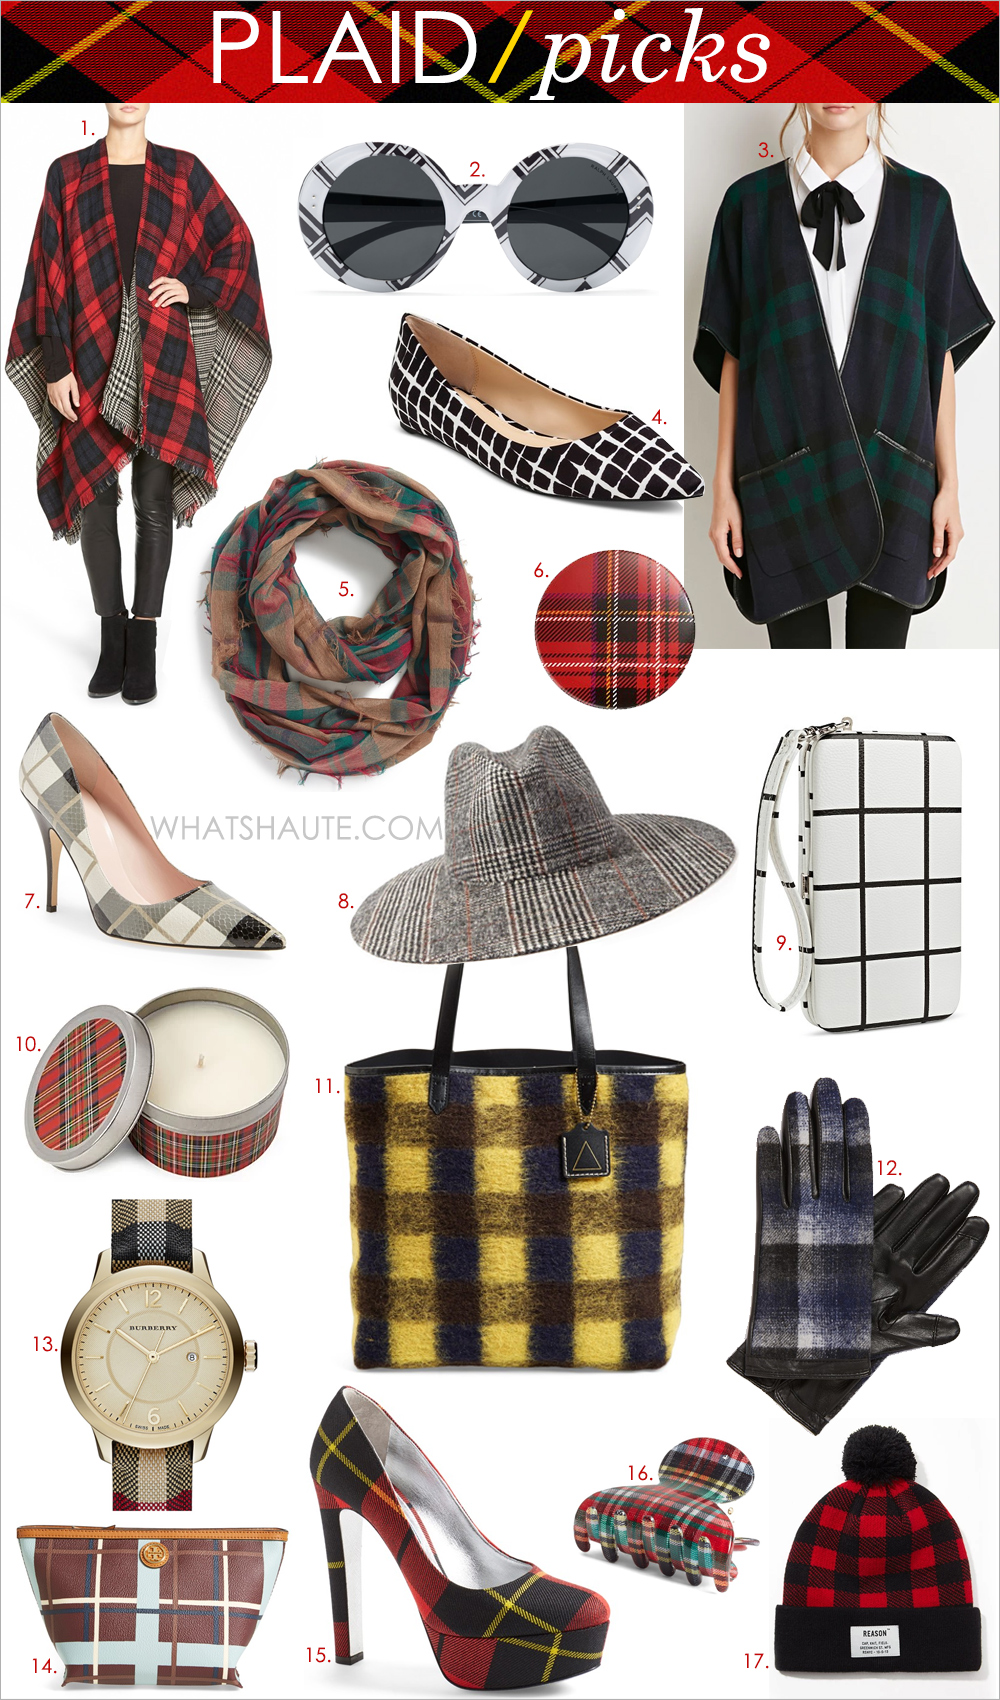 "MODENA 'Double Plaid' Reversible Ruana, BP. Plaid Infinity Scarf, Kelsi Dagger Brooklyn 'Commuter' Plaid Flannel Tote, Ralph Lauren Round Pinstriped Sunglasses, Halogen® Plaid Tech Gloves, Tory Burch 'Kerrington' Cosmetics Case, France Luxe 'Mini Couture' Plaid Jaw Clip, Burberry Check Stamped Leather Strap Watch, 32mm, kate spade new york 'licorice too' pump, Prada Tartan Pump, Scented Plaid Candle, Reason Plaid Pom Beanie, Tartan Plaid Poncho, Wide-Brim Plaid Fedora, Merona™® Phone Case Wallet Black/White, Adam Lippes for Target Pointed Ballet Flat - Black & White Plaid, Plaid, ""Rad"", Smiley Face, ""I Recycle Boys"" & ""I Love LA"" Pin Set"